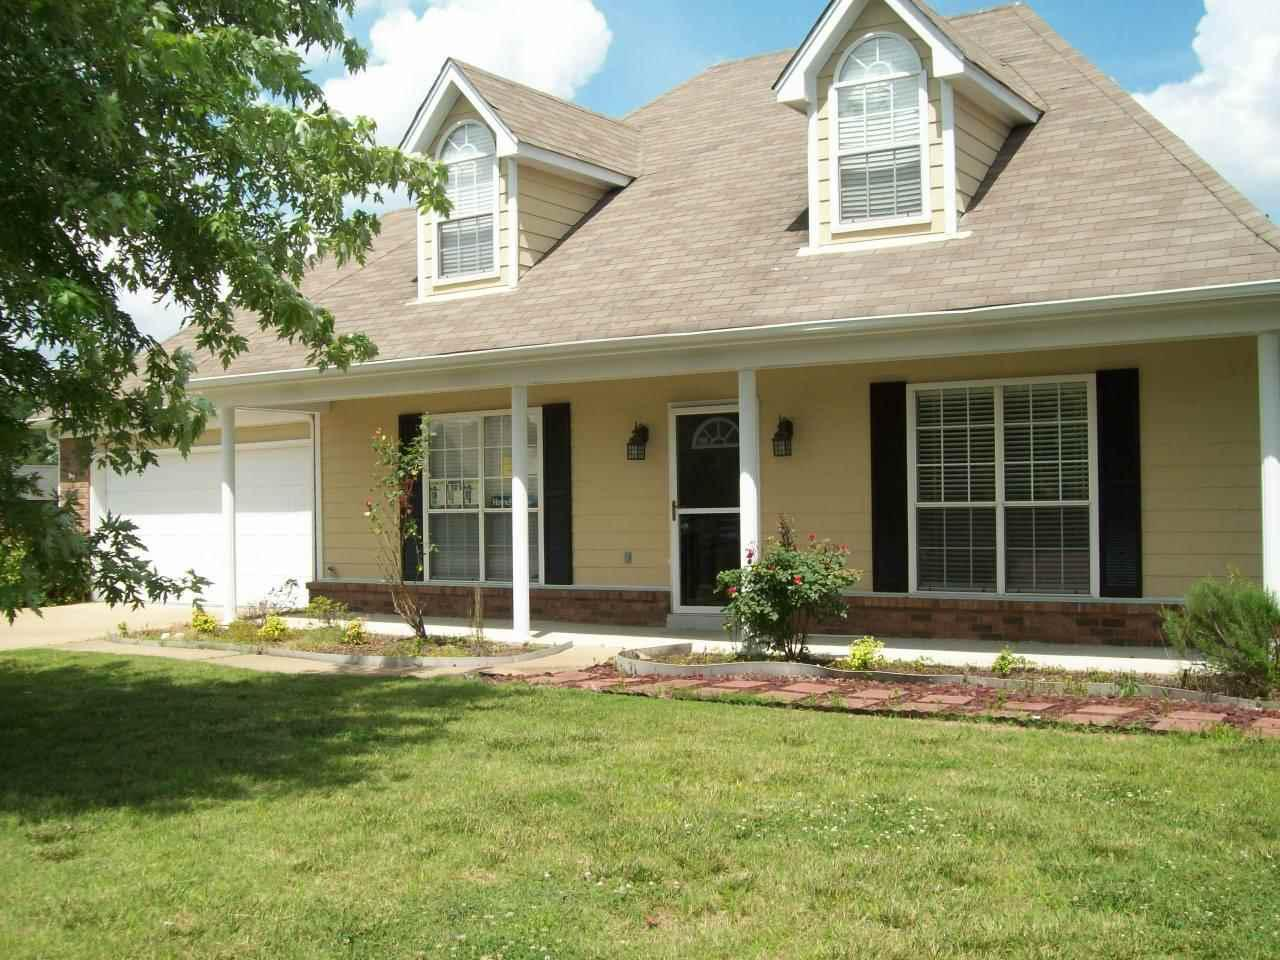 Tennessee fayette county rossville -  175 000 Property In Rossville Tennessee